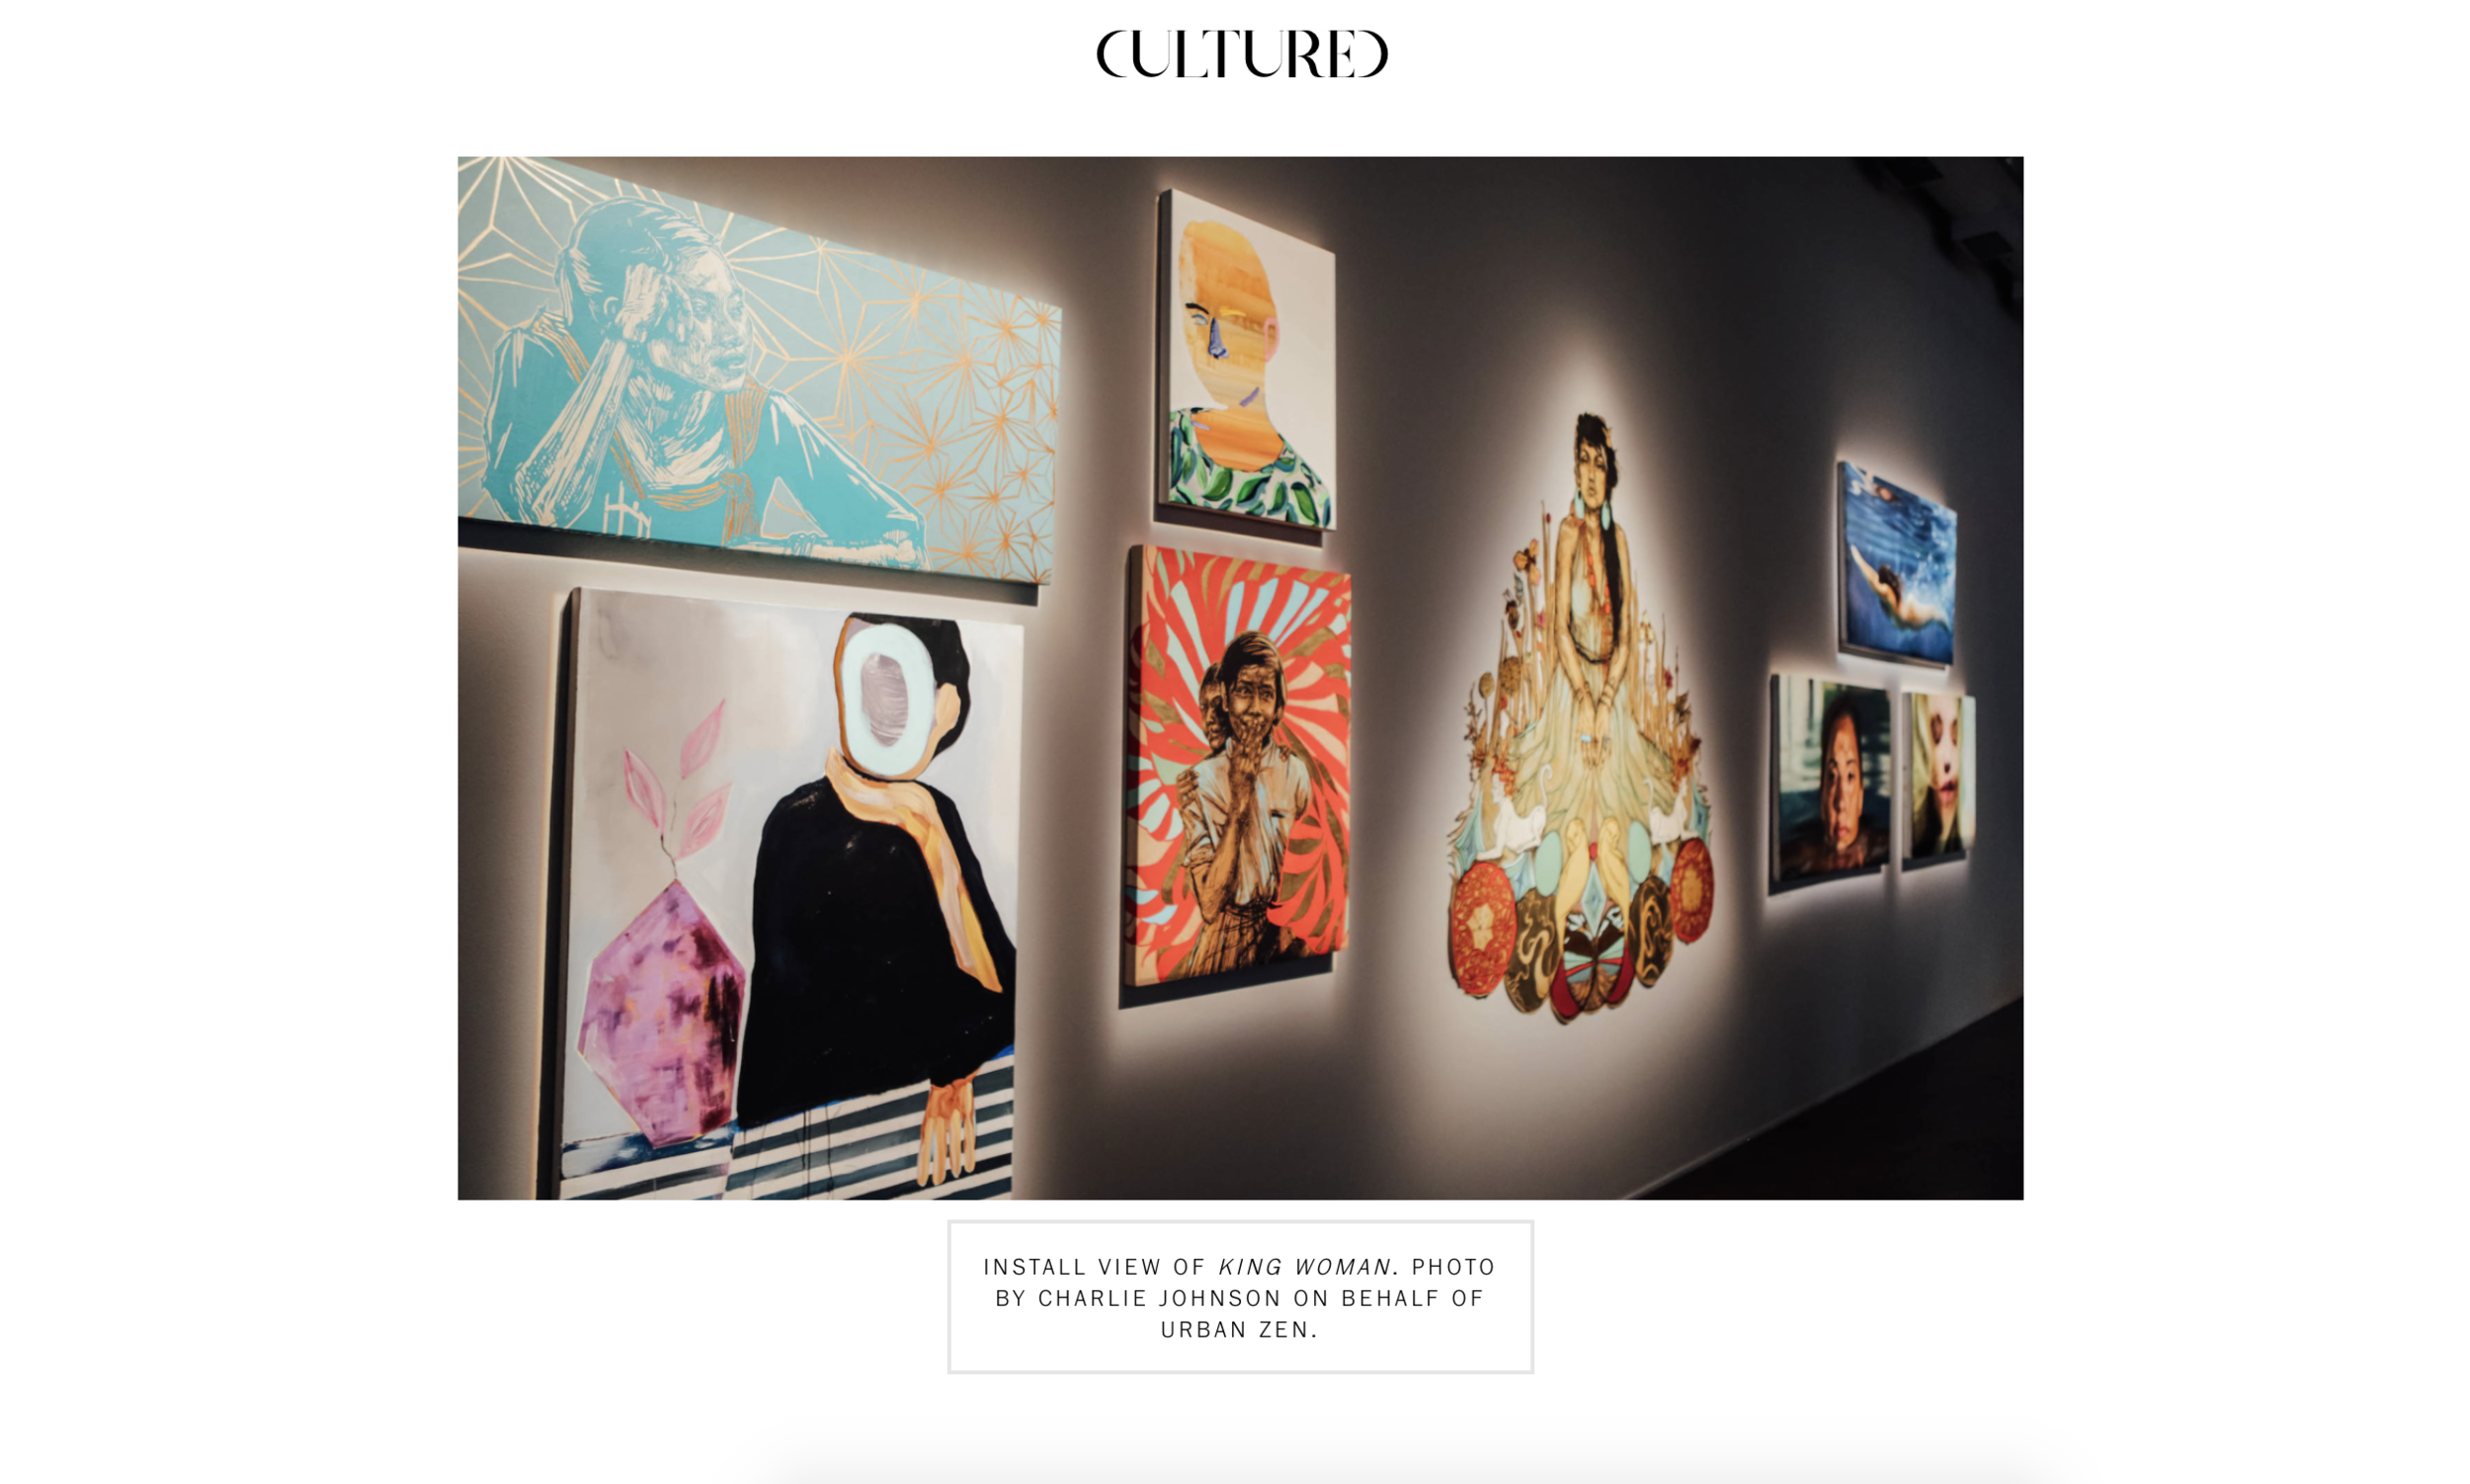 - Urban Zen Event CoverageCultured Magazine Donna Karan Event Coveragehttps://www.culturedmag.com/donna-karan/